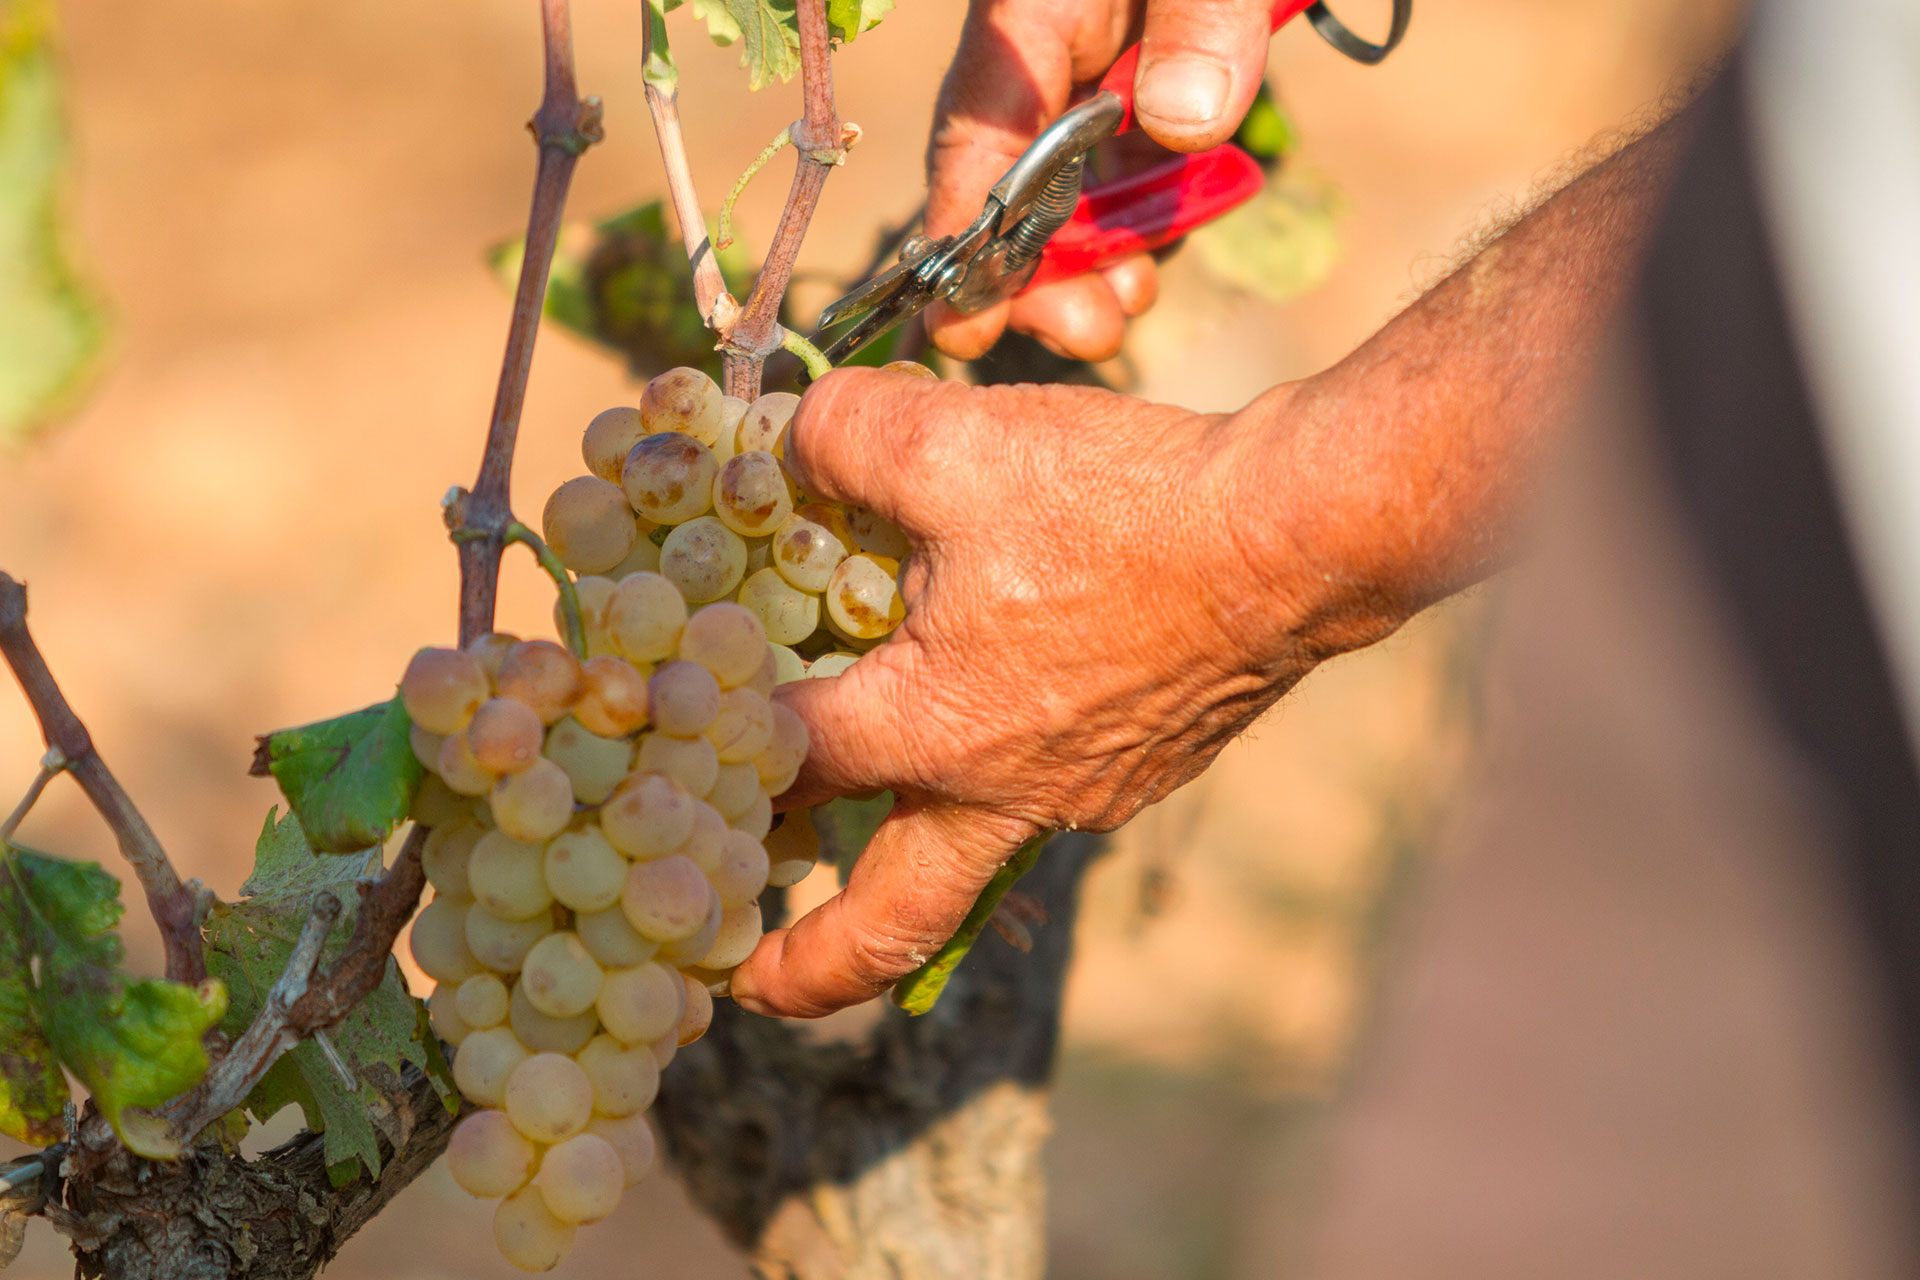 Hand-picked grapes